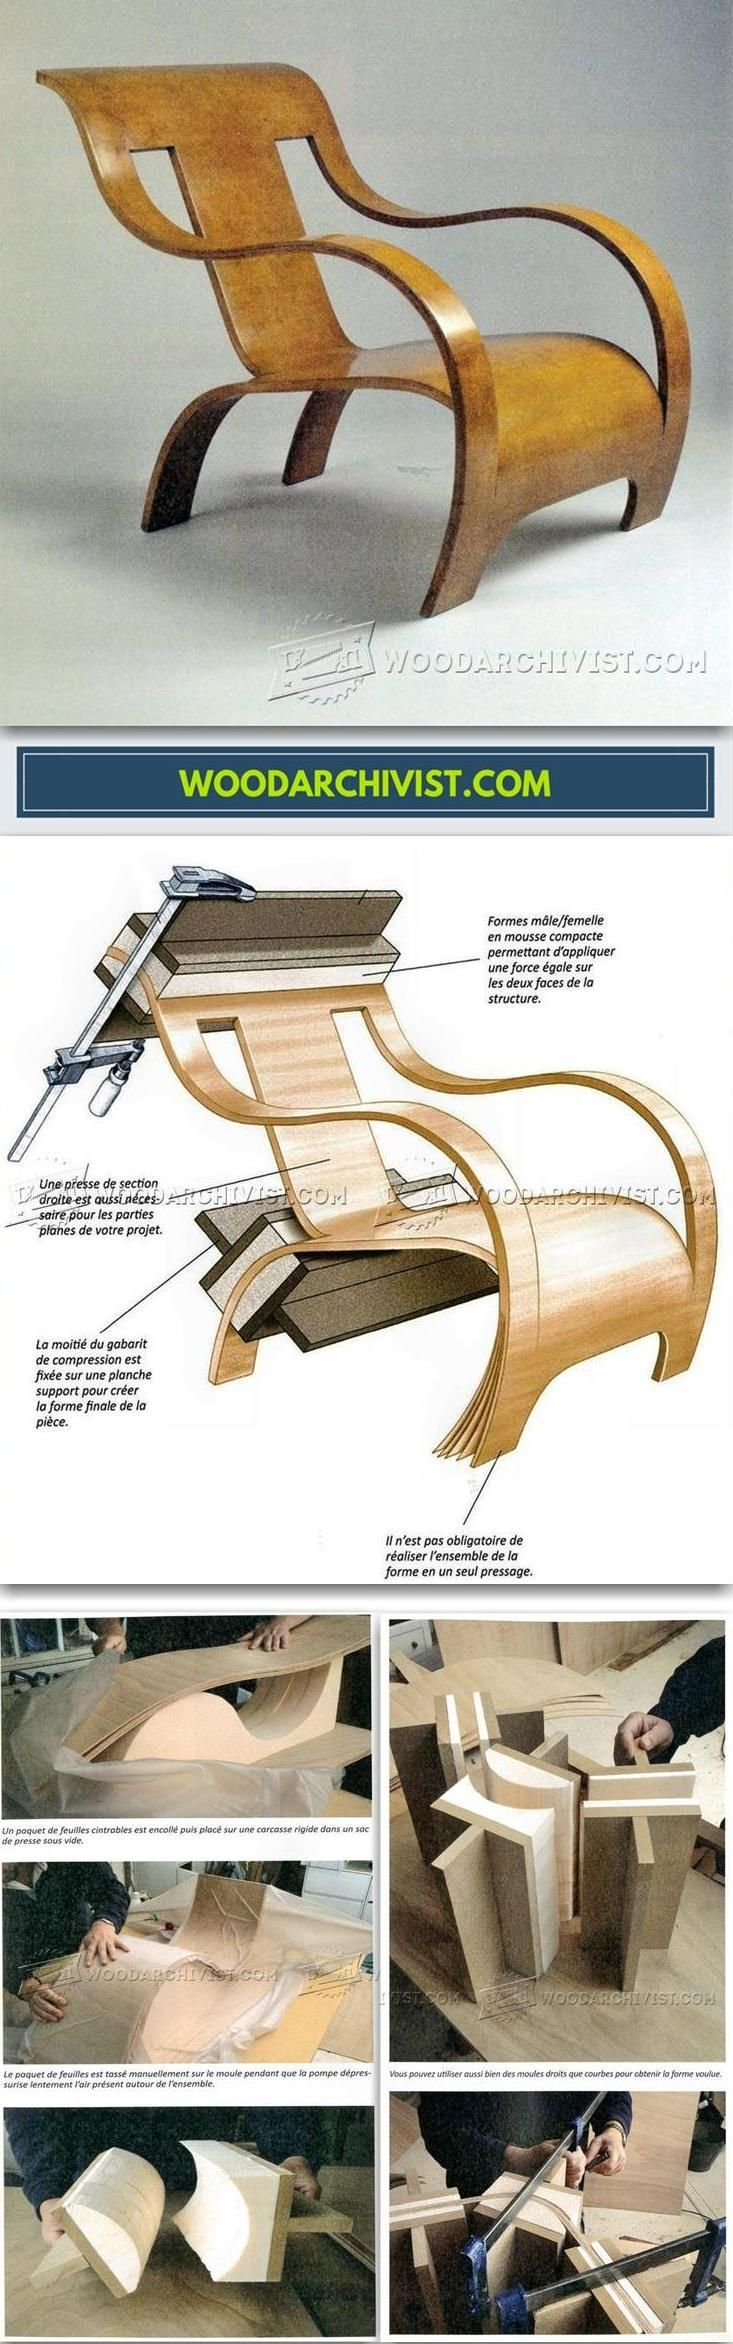 Bent Armchair Plans Furniture Plans And Projects Woodarchivist Com Timber Furniture Woodworking Furniture Building Furniture